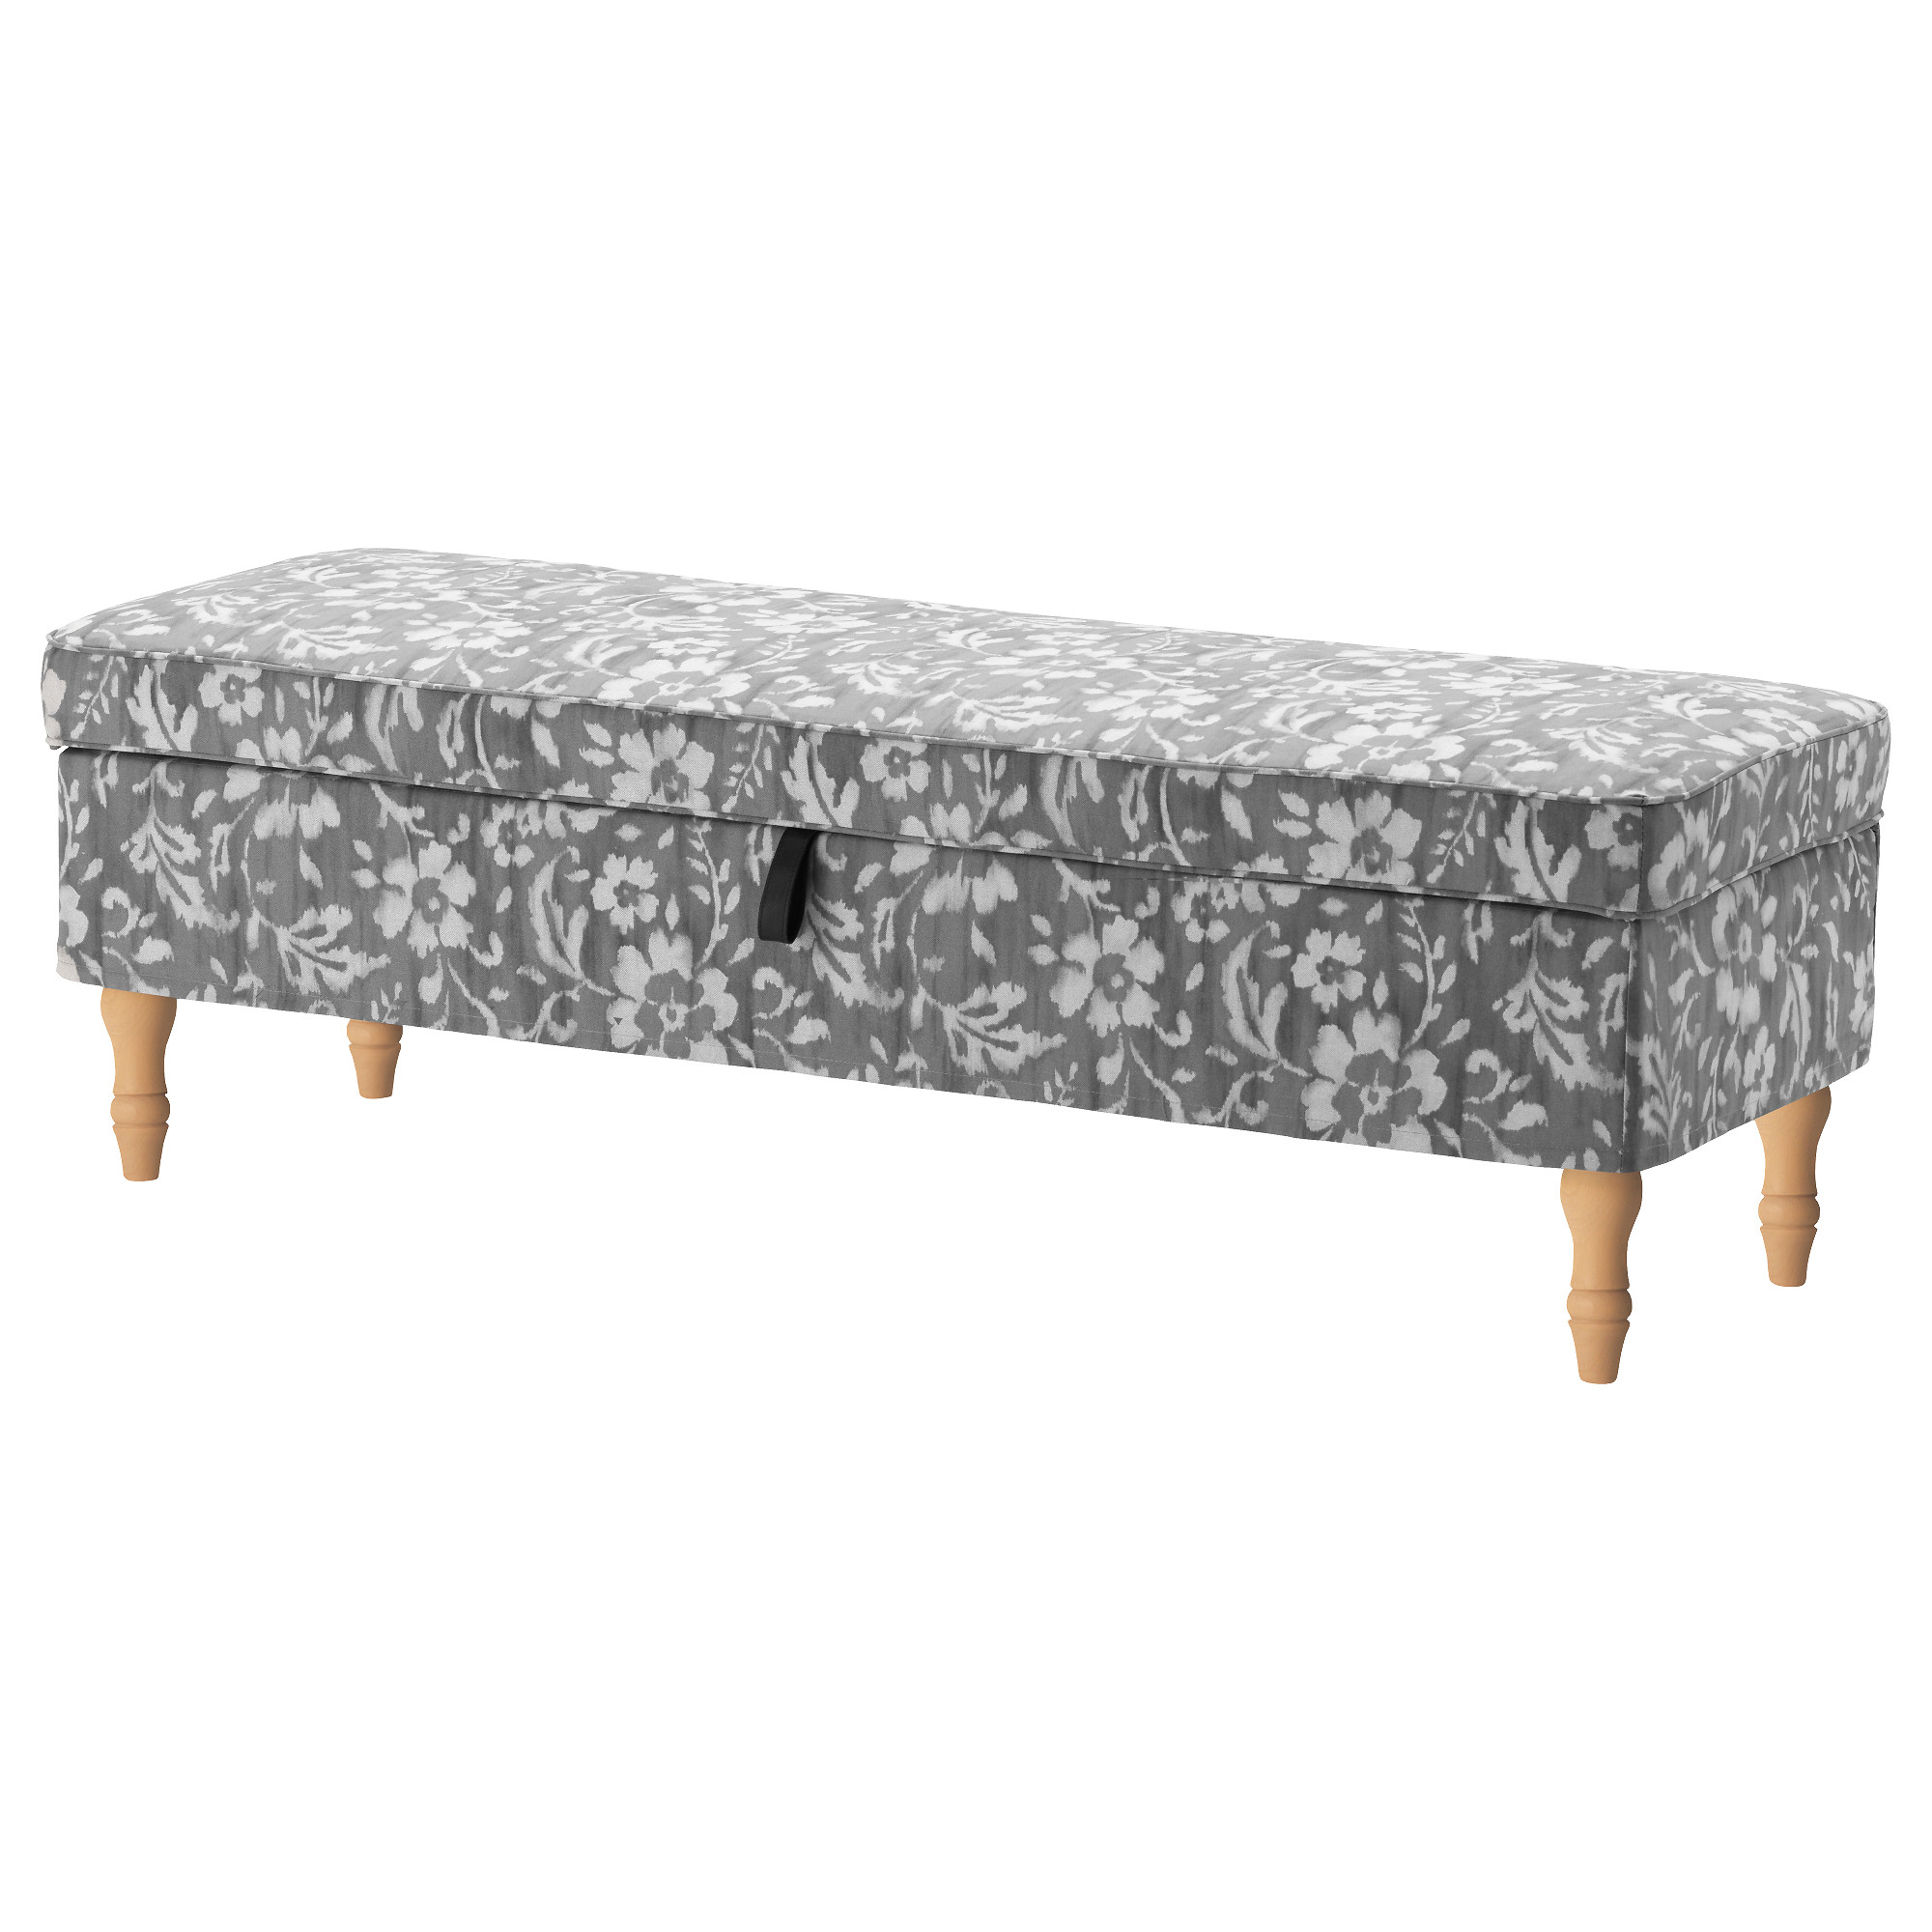 STOCKSUND Bench cover Nolhaga gray beige IKEA